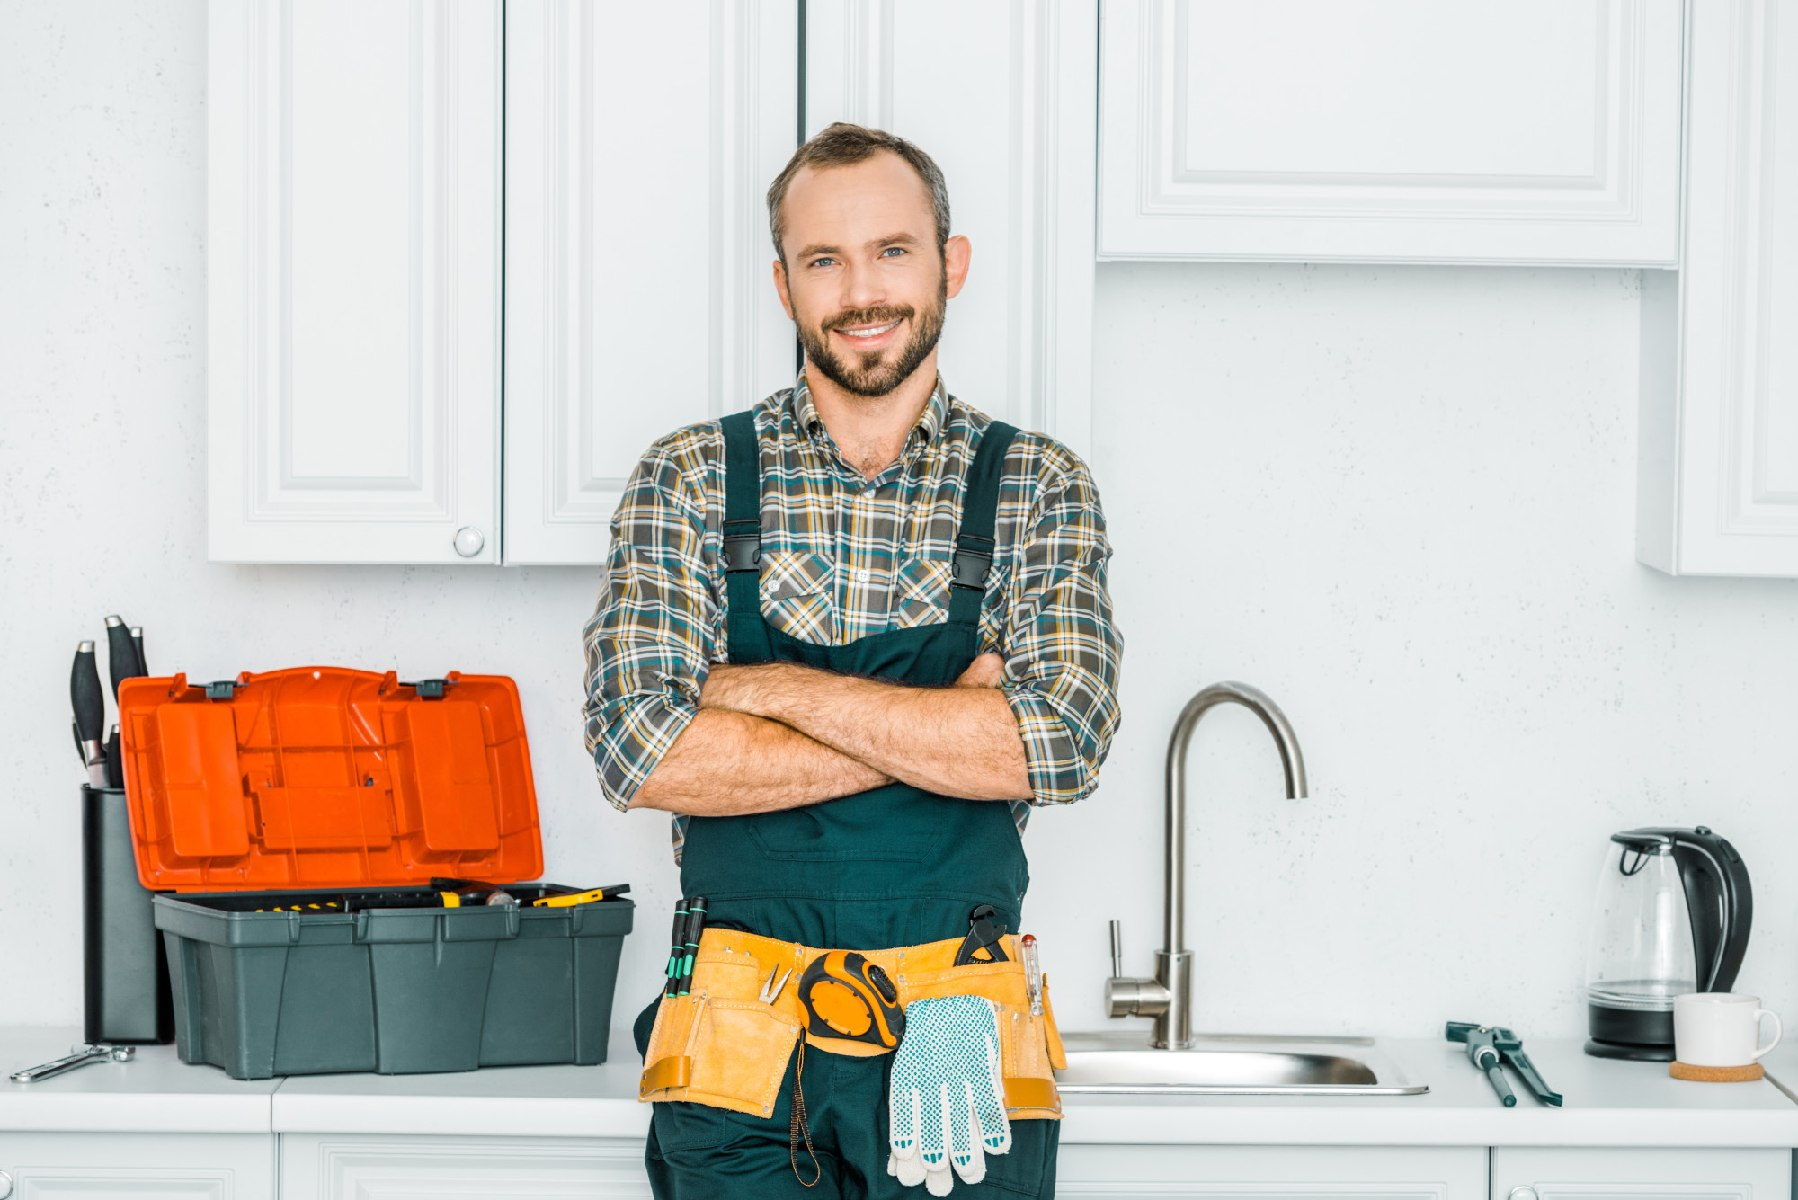 How to Get a Plumbing Apprenticeship